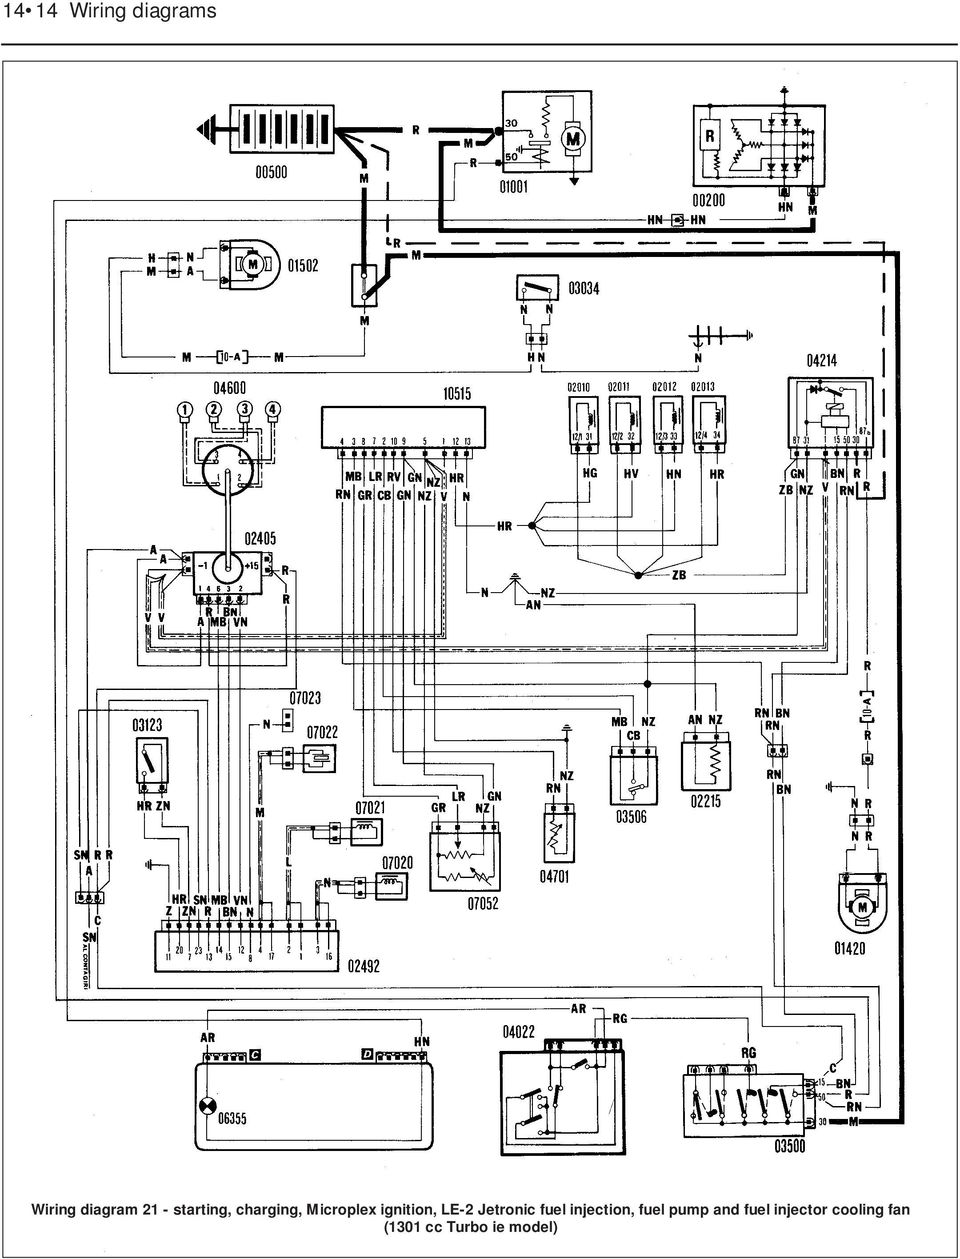 Wiring Diagrams Component Key For 1 To 29 Note Not 2005 Toyota Corolla Engine Diagram Distributor Less Le 2 Jetronic Fuel Injection Pump And